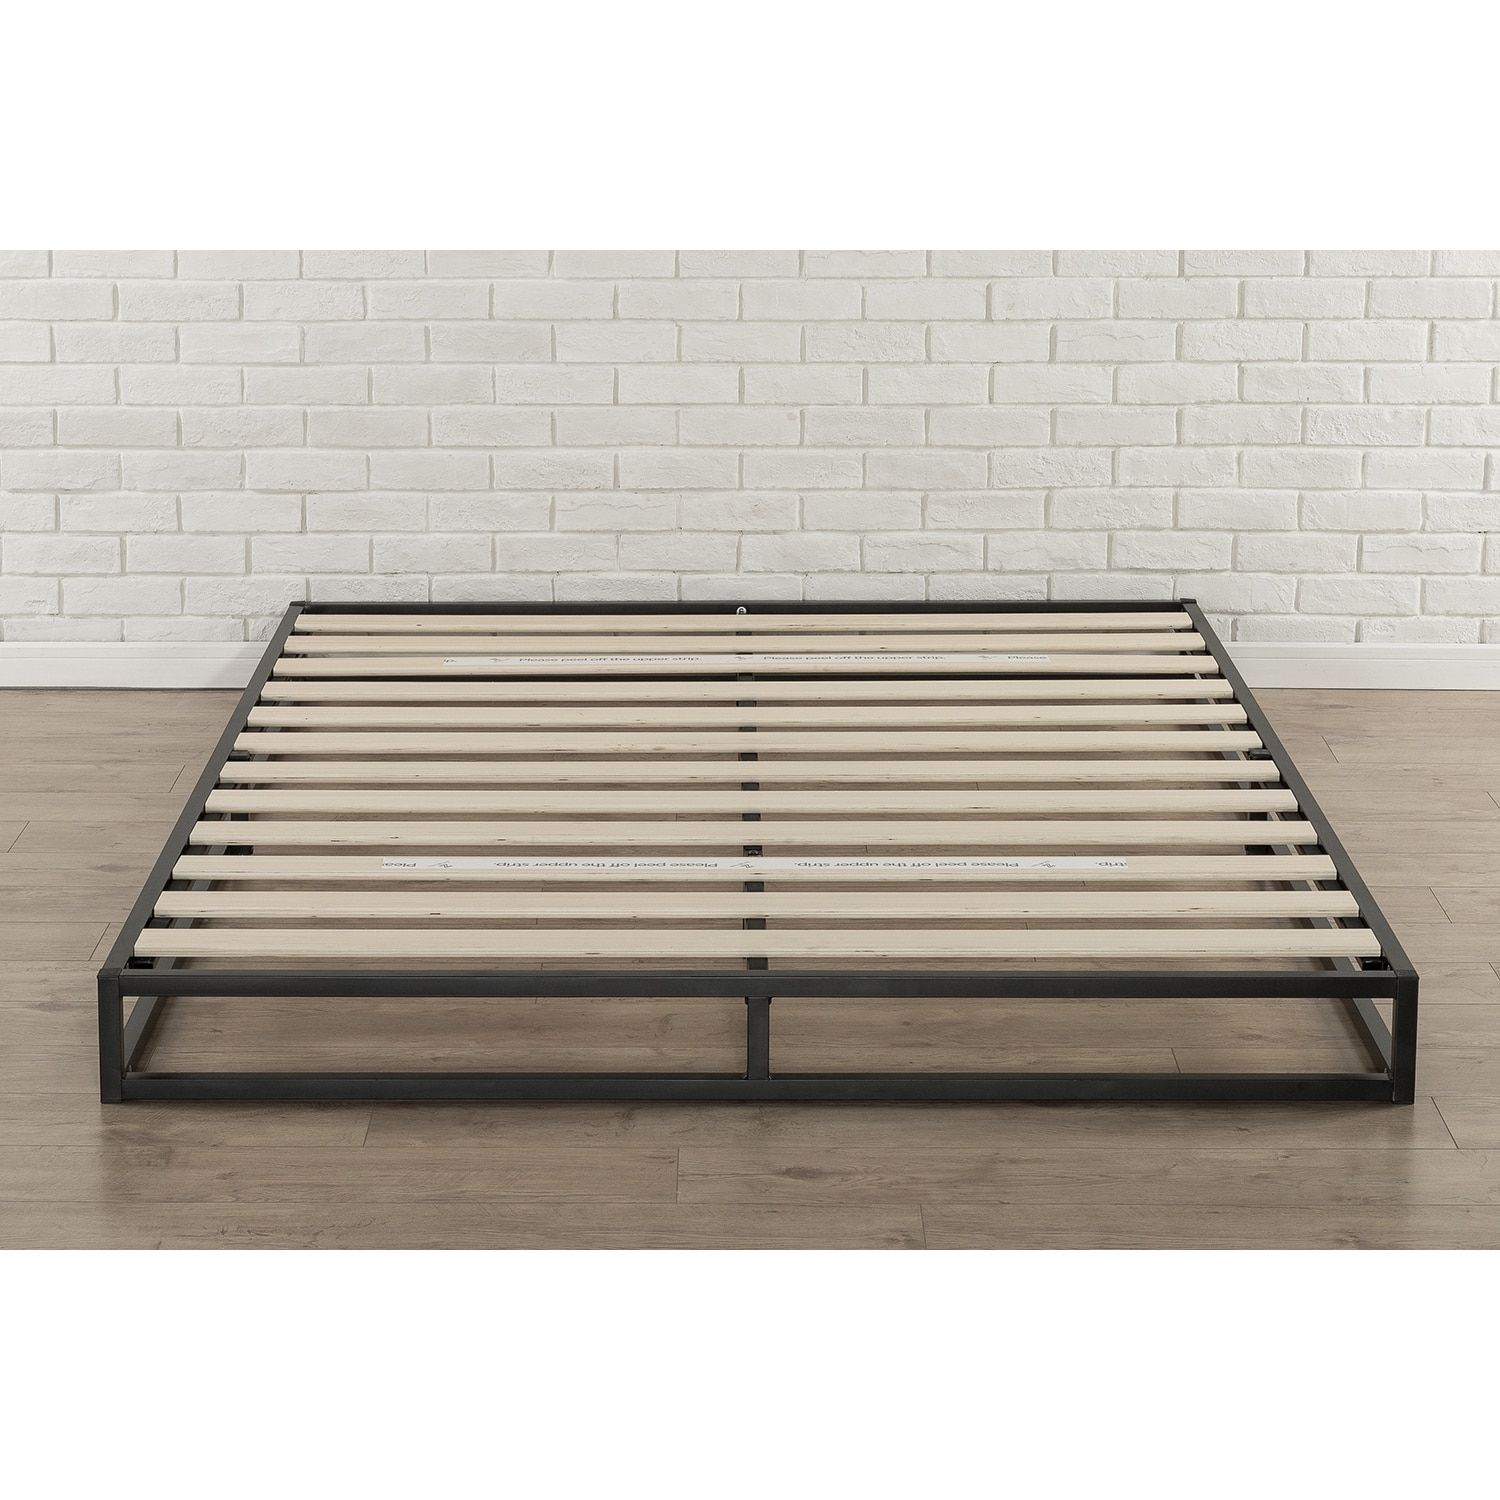 Online Shopping Bedding Furniture Electronics Jewelry Clothing More Metal Platform Bed Platform Bed Frame Platform Bed Frame Full